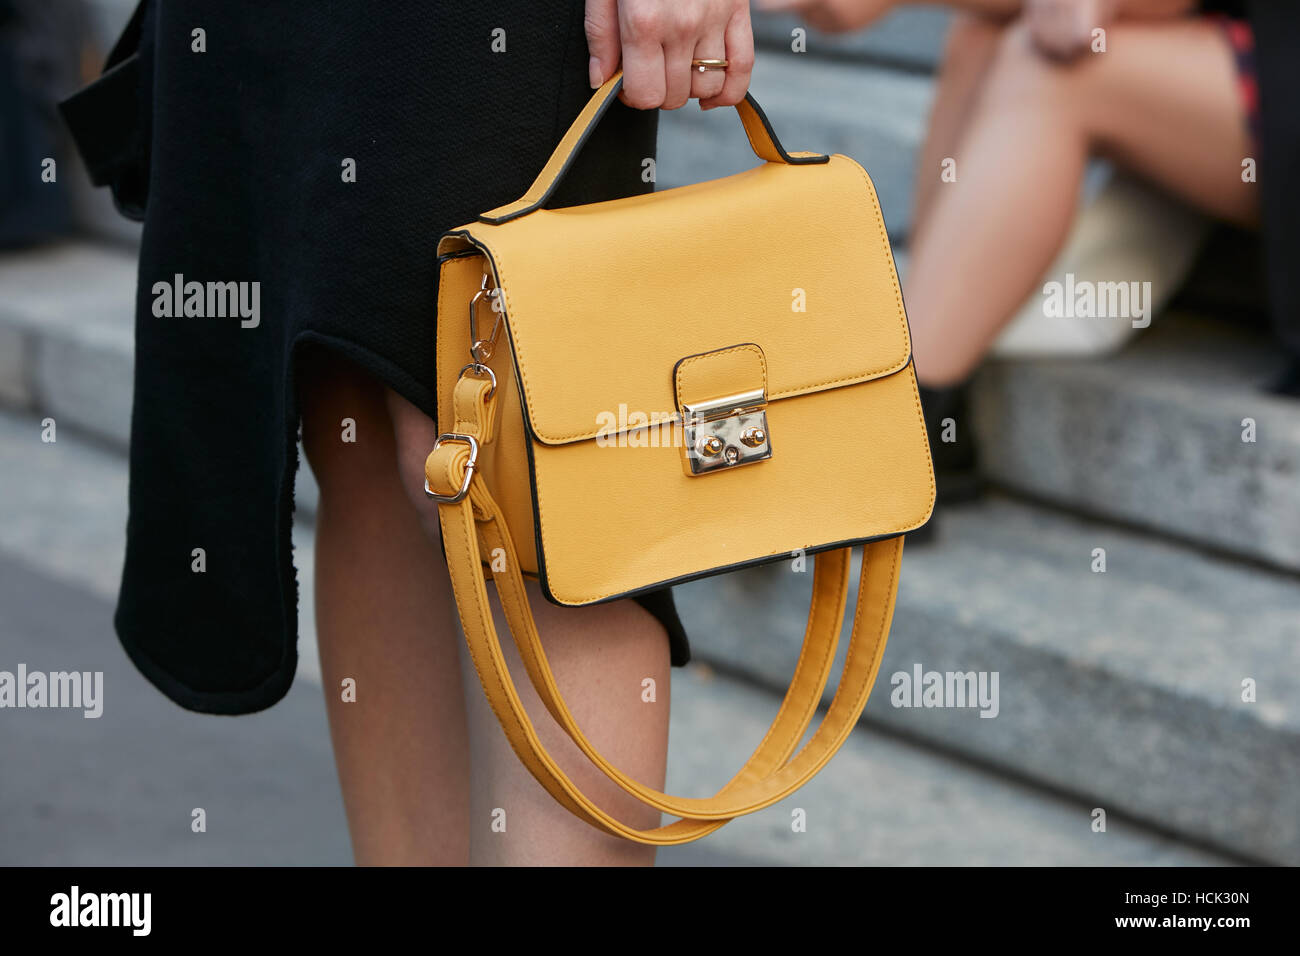 968995cd36 Woman with yellow leather bag before Salvatore Ferragamo fashion show